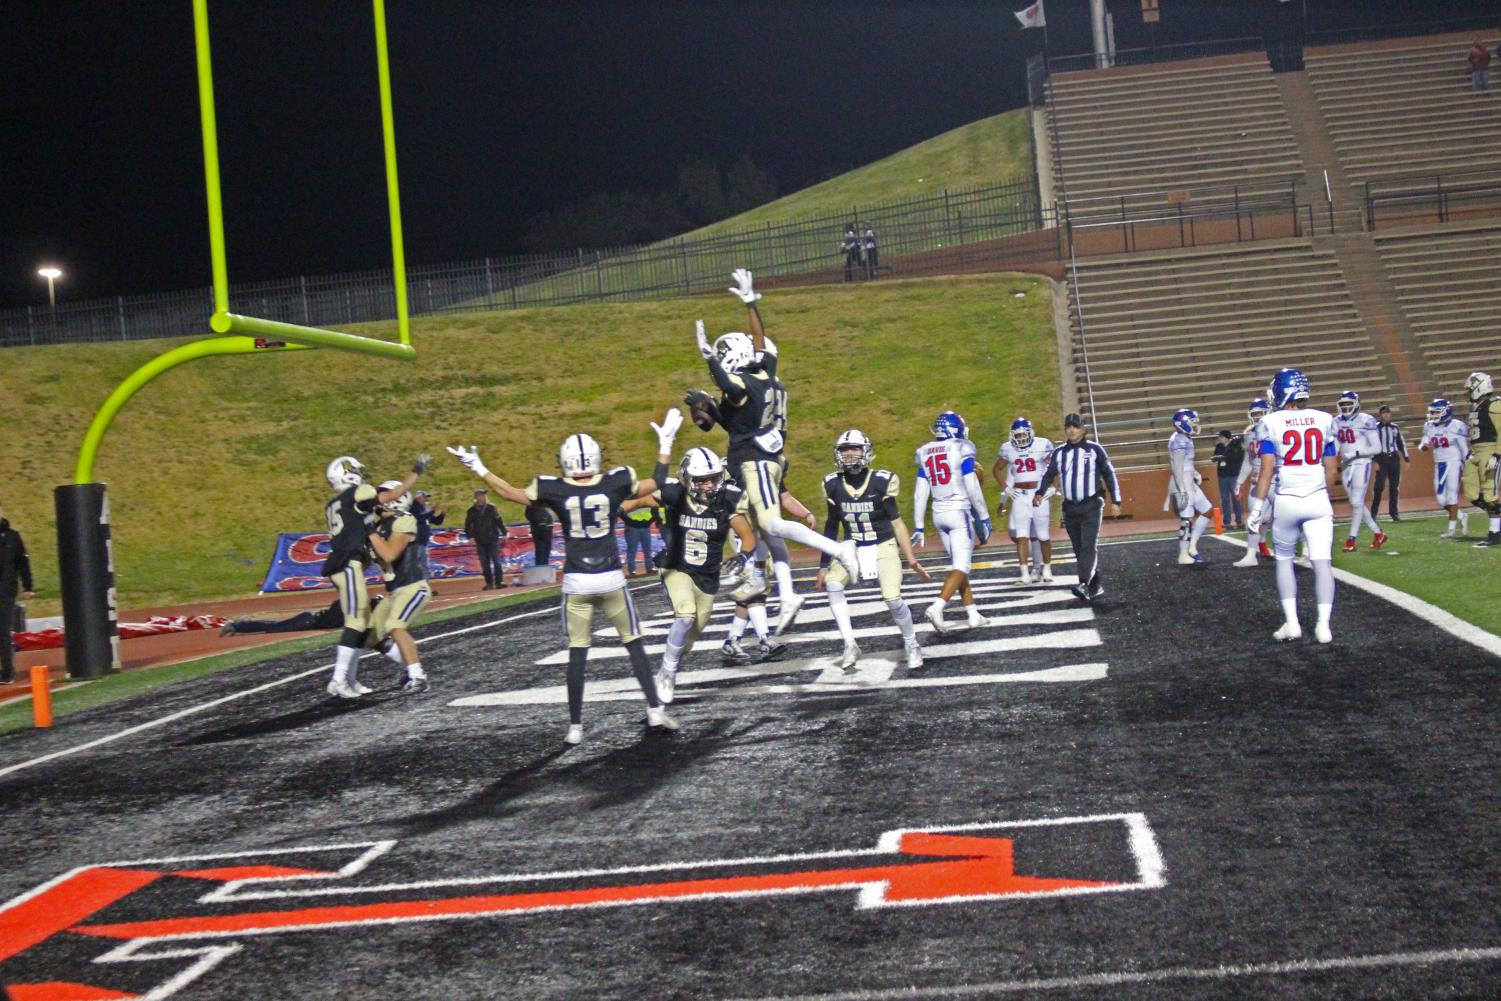 Players celebrate in the endzone after an early touchdown